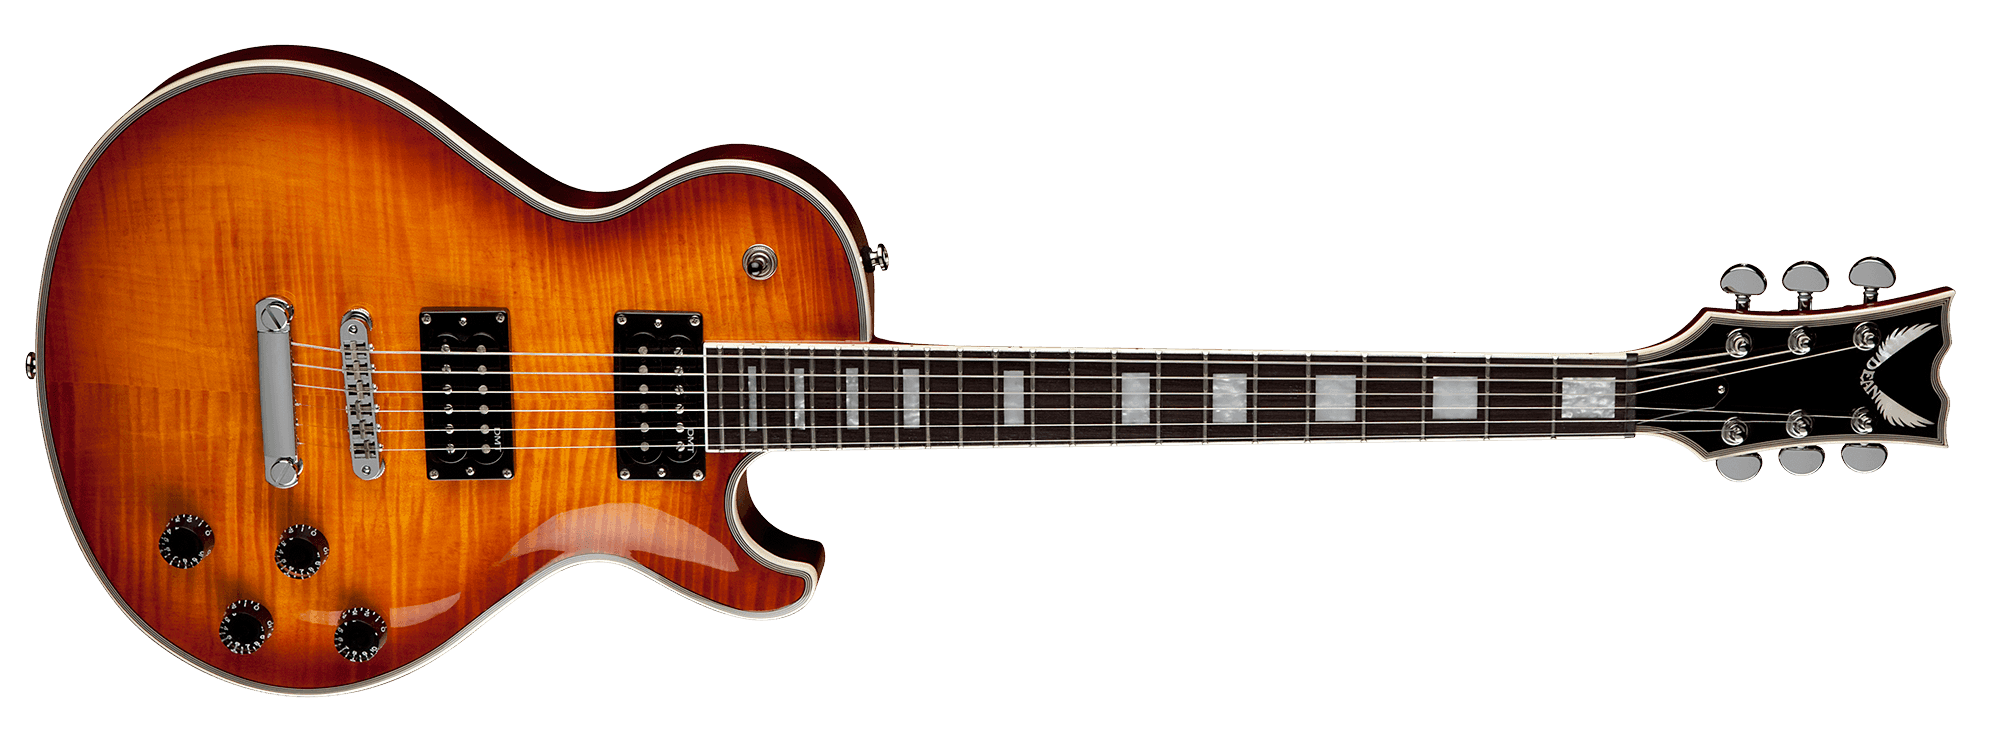 Thoroughbred deluxe trans amber. Clipart guitar guitar neck